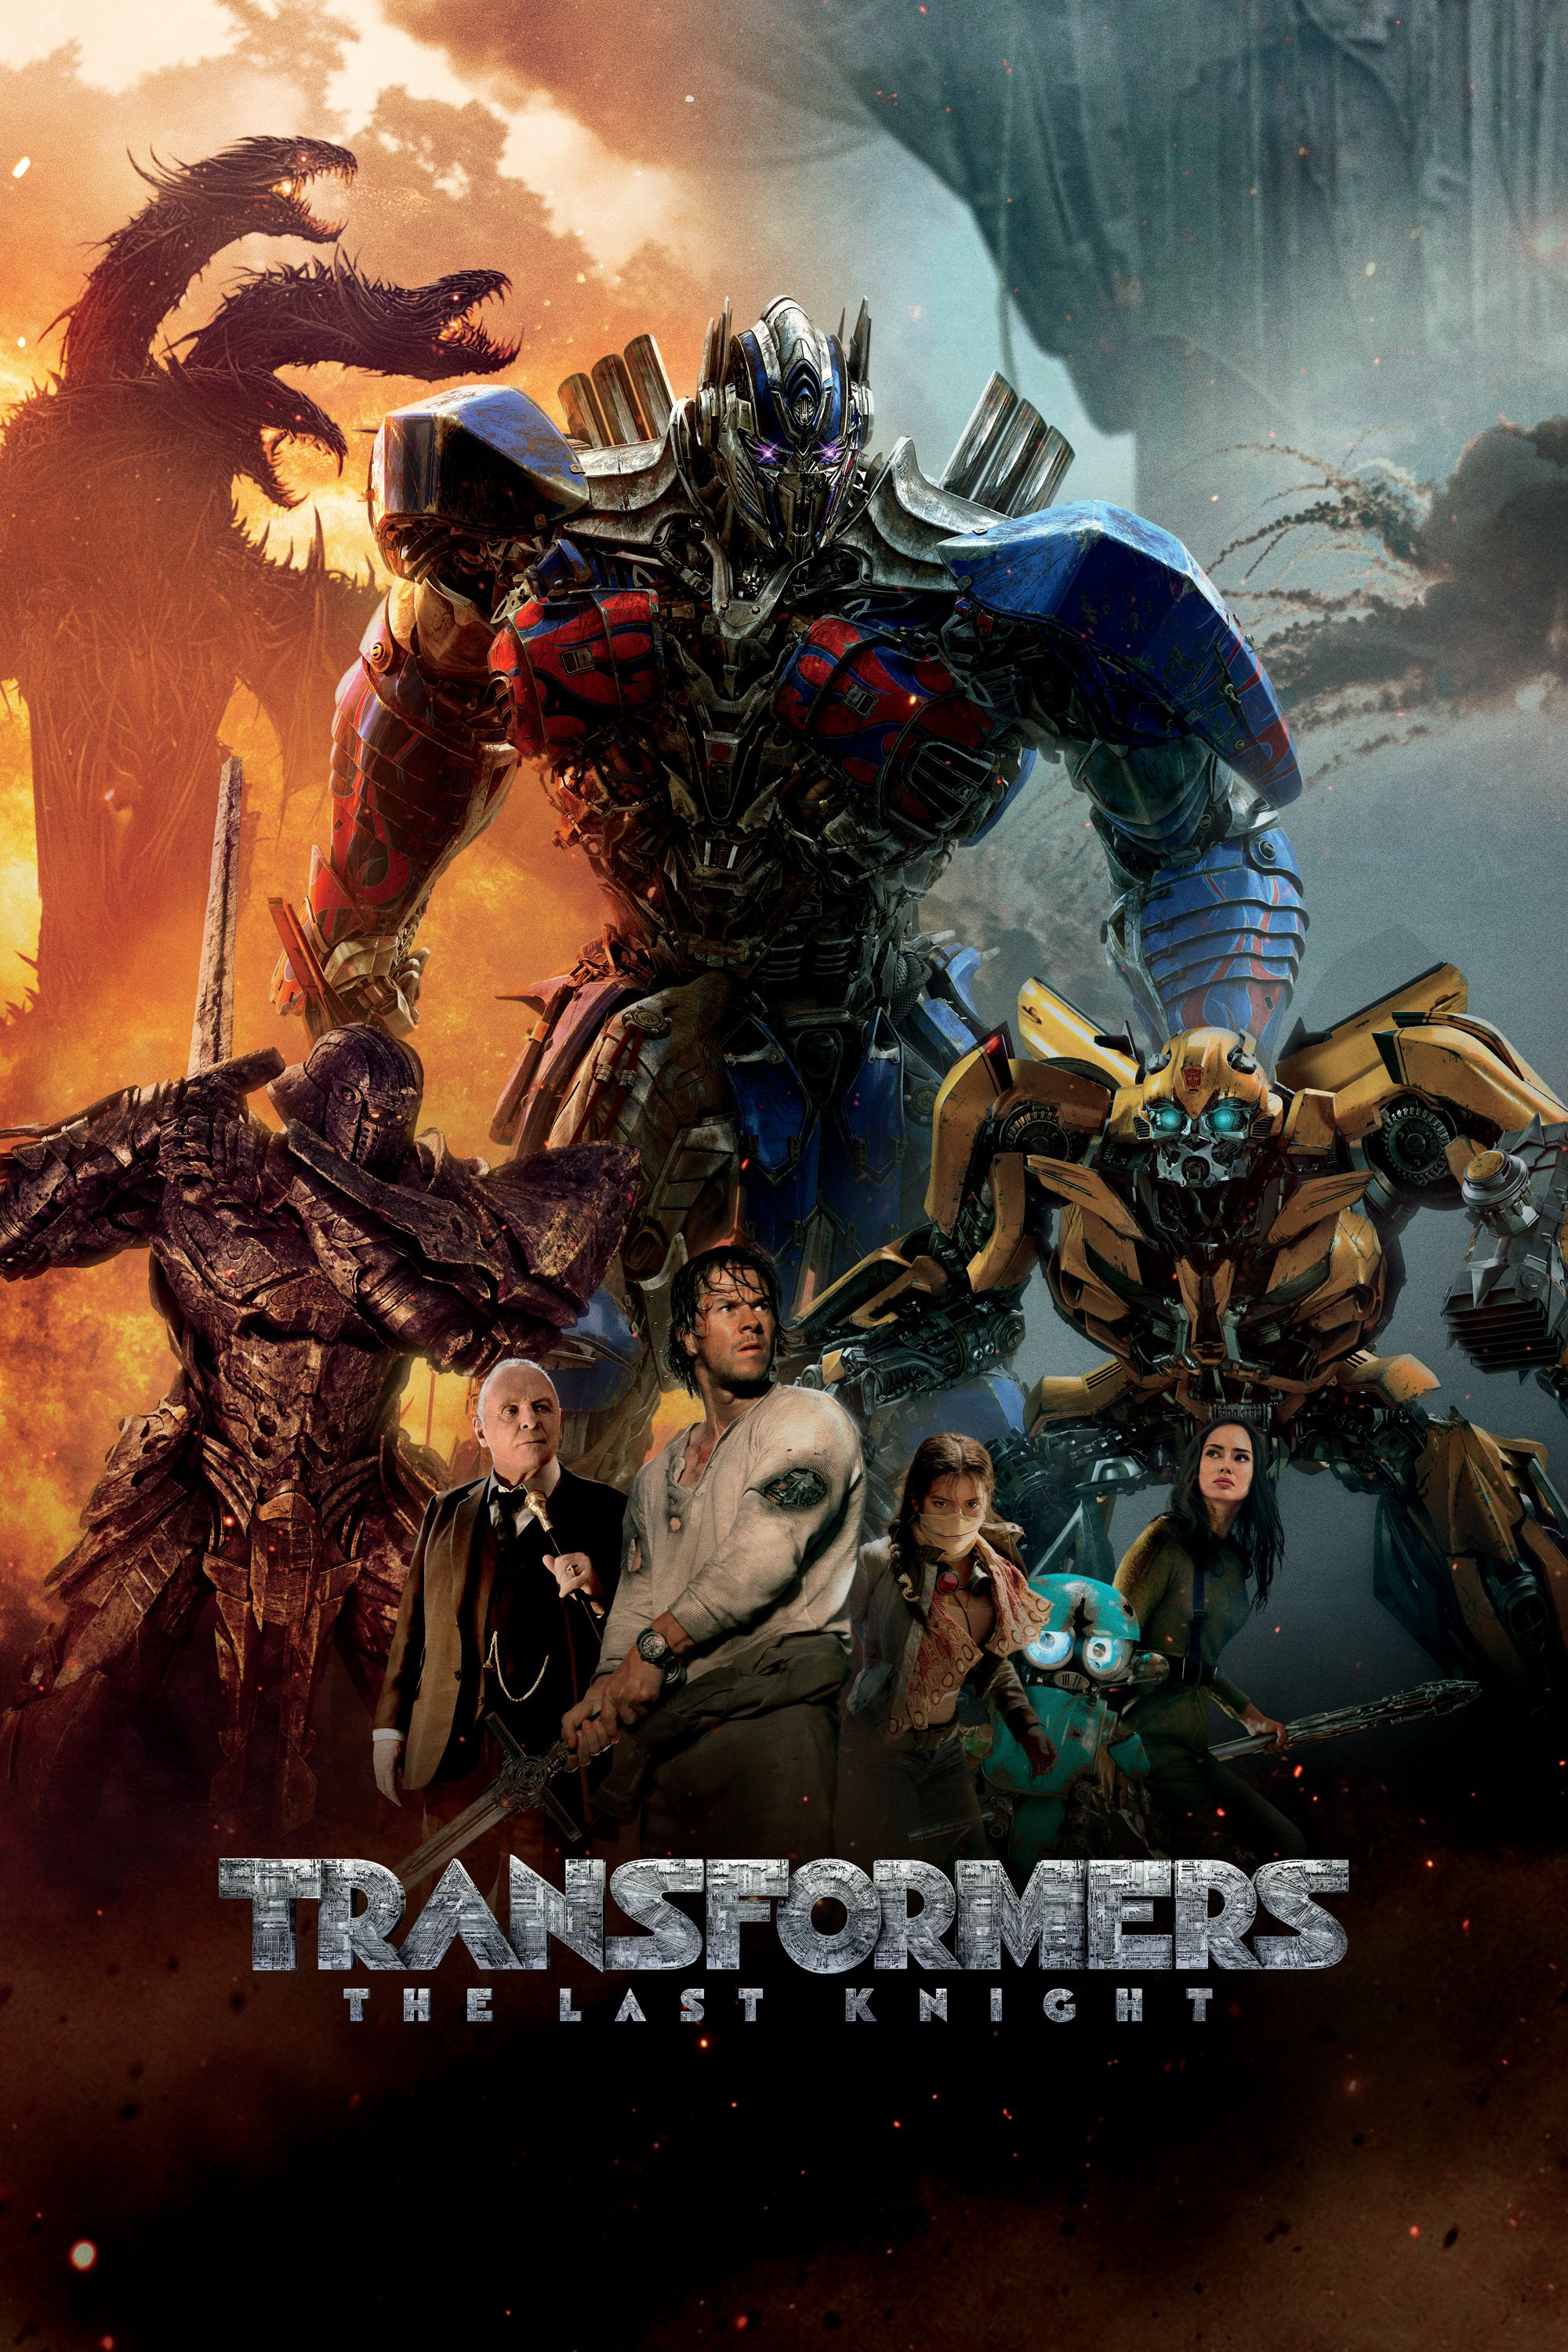 Transformers The Last Knight: Surprisingly enough much less crappy than I expected.